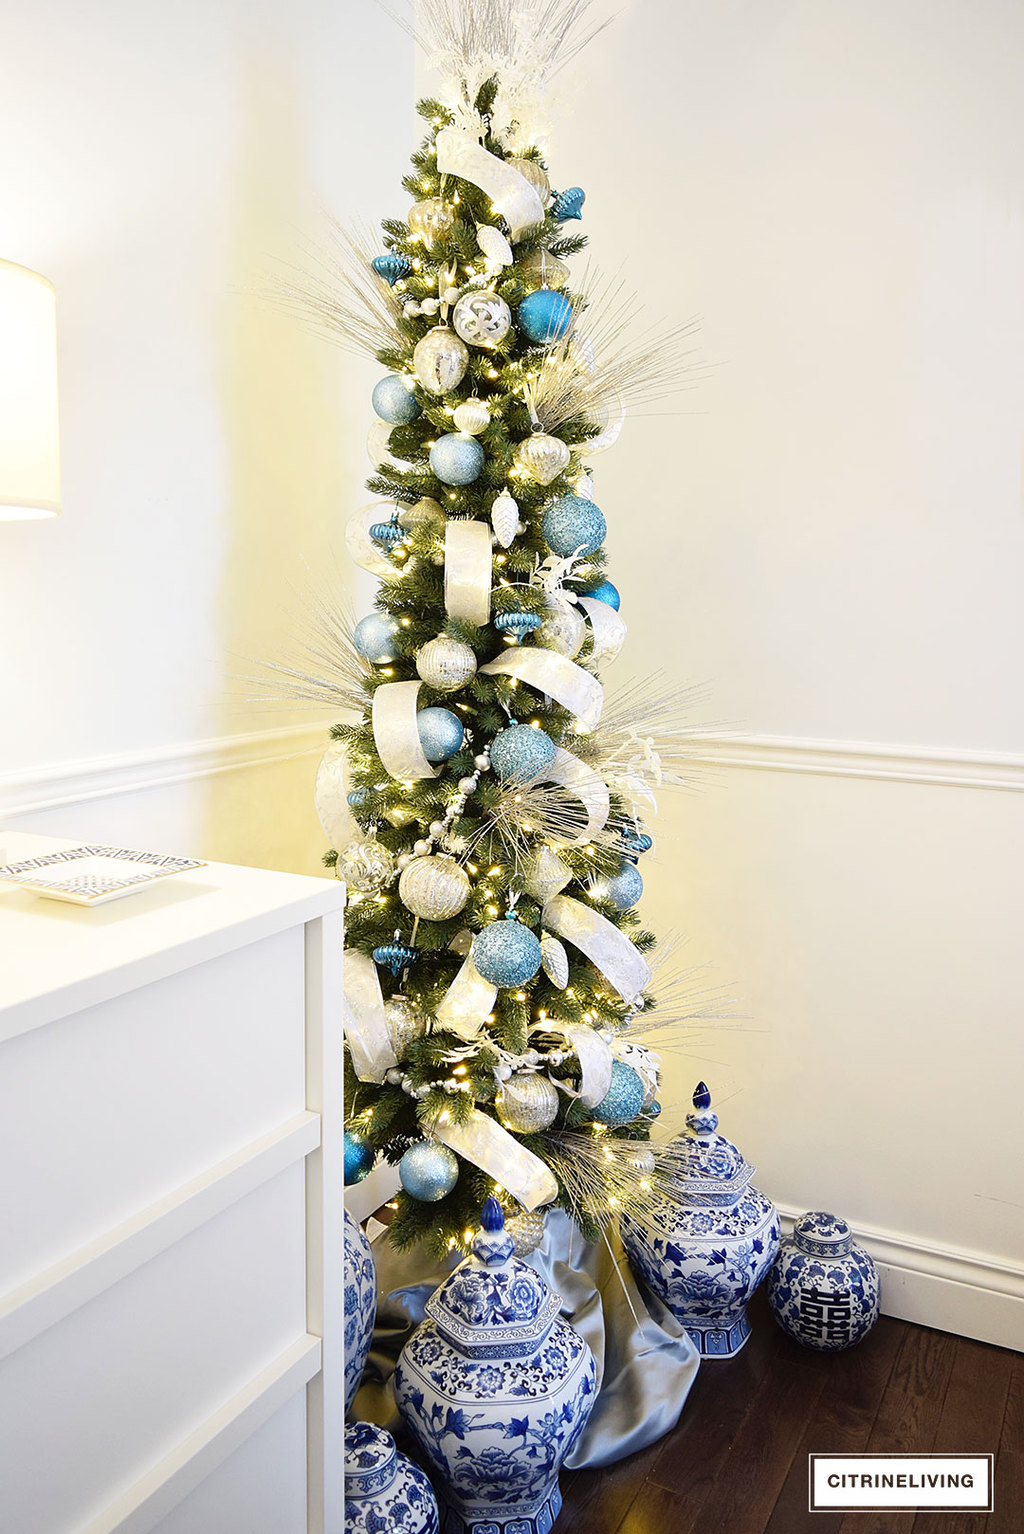 Christmas Home Tour - mixed metallics and blue and white create a chic Holiday theme